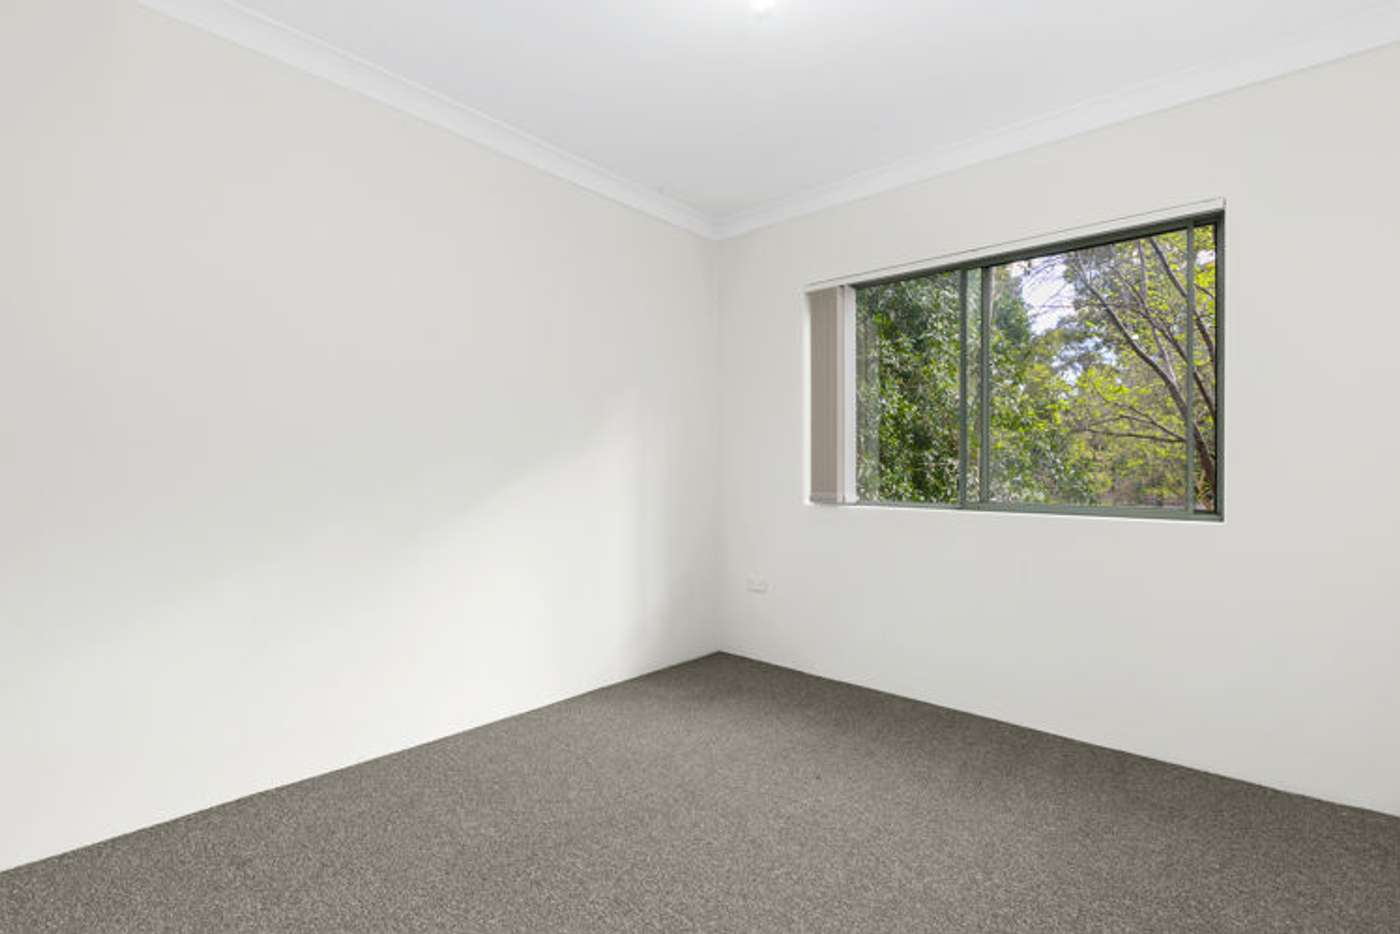 Sixth view of Homely unit listing, 3/33 Meehan Street, Granville NSW 2142